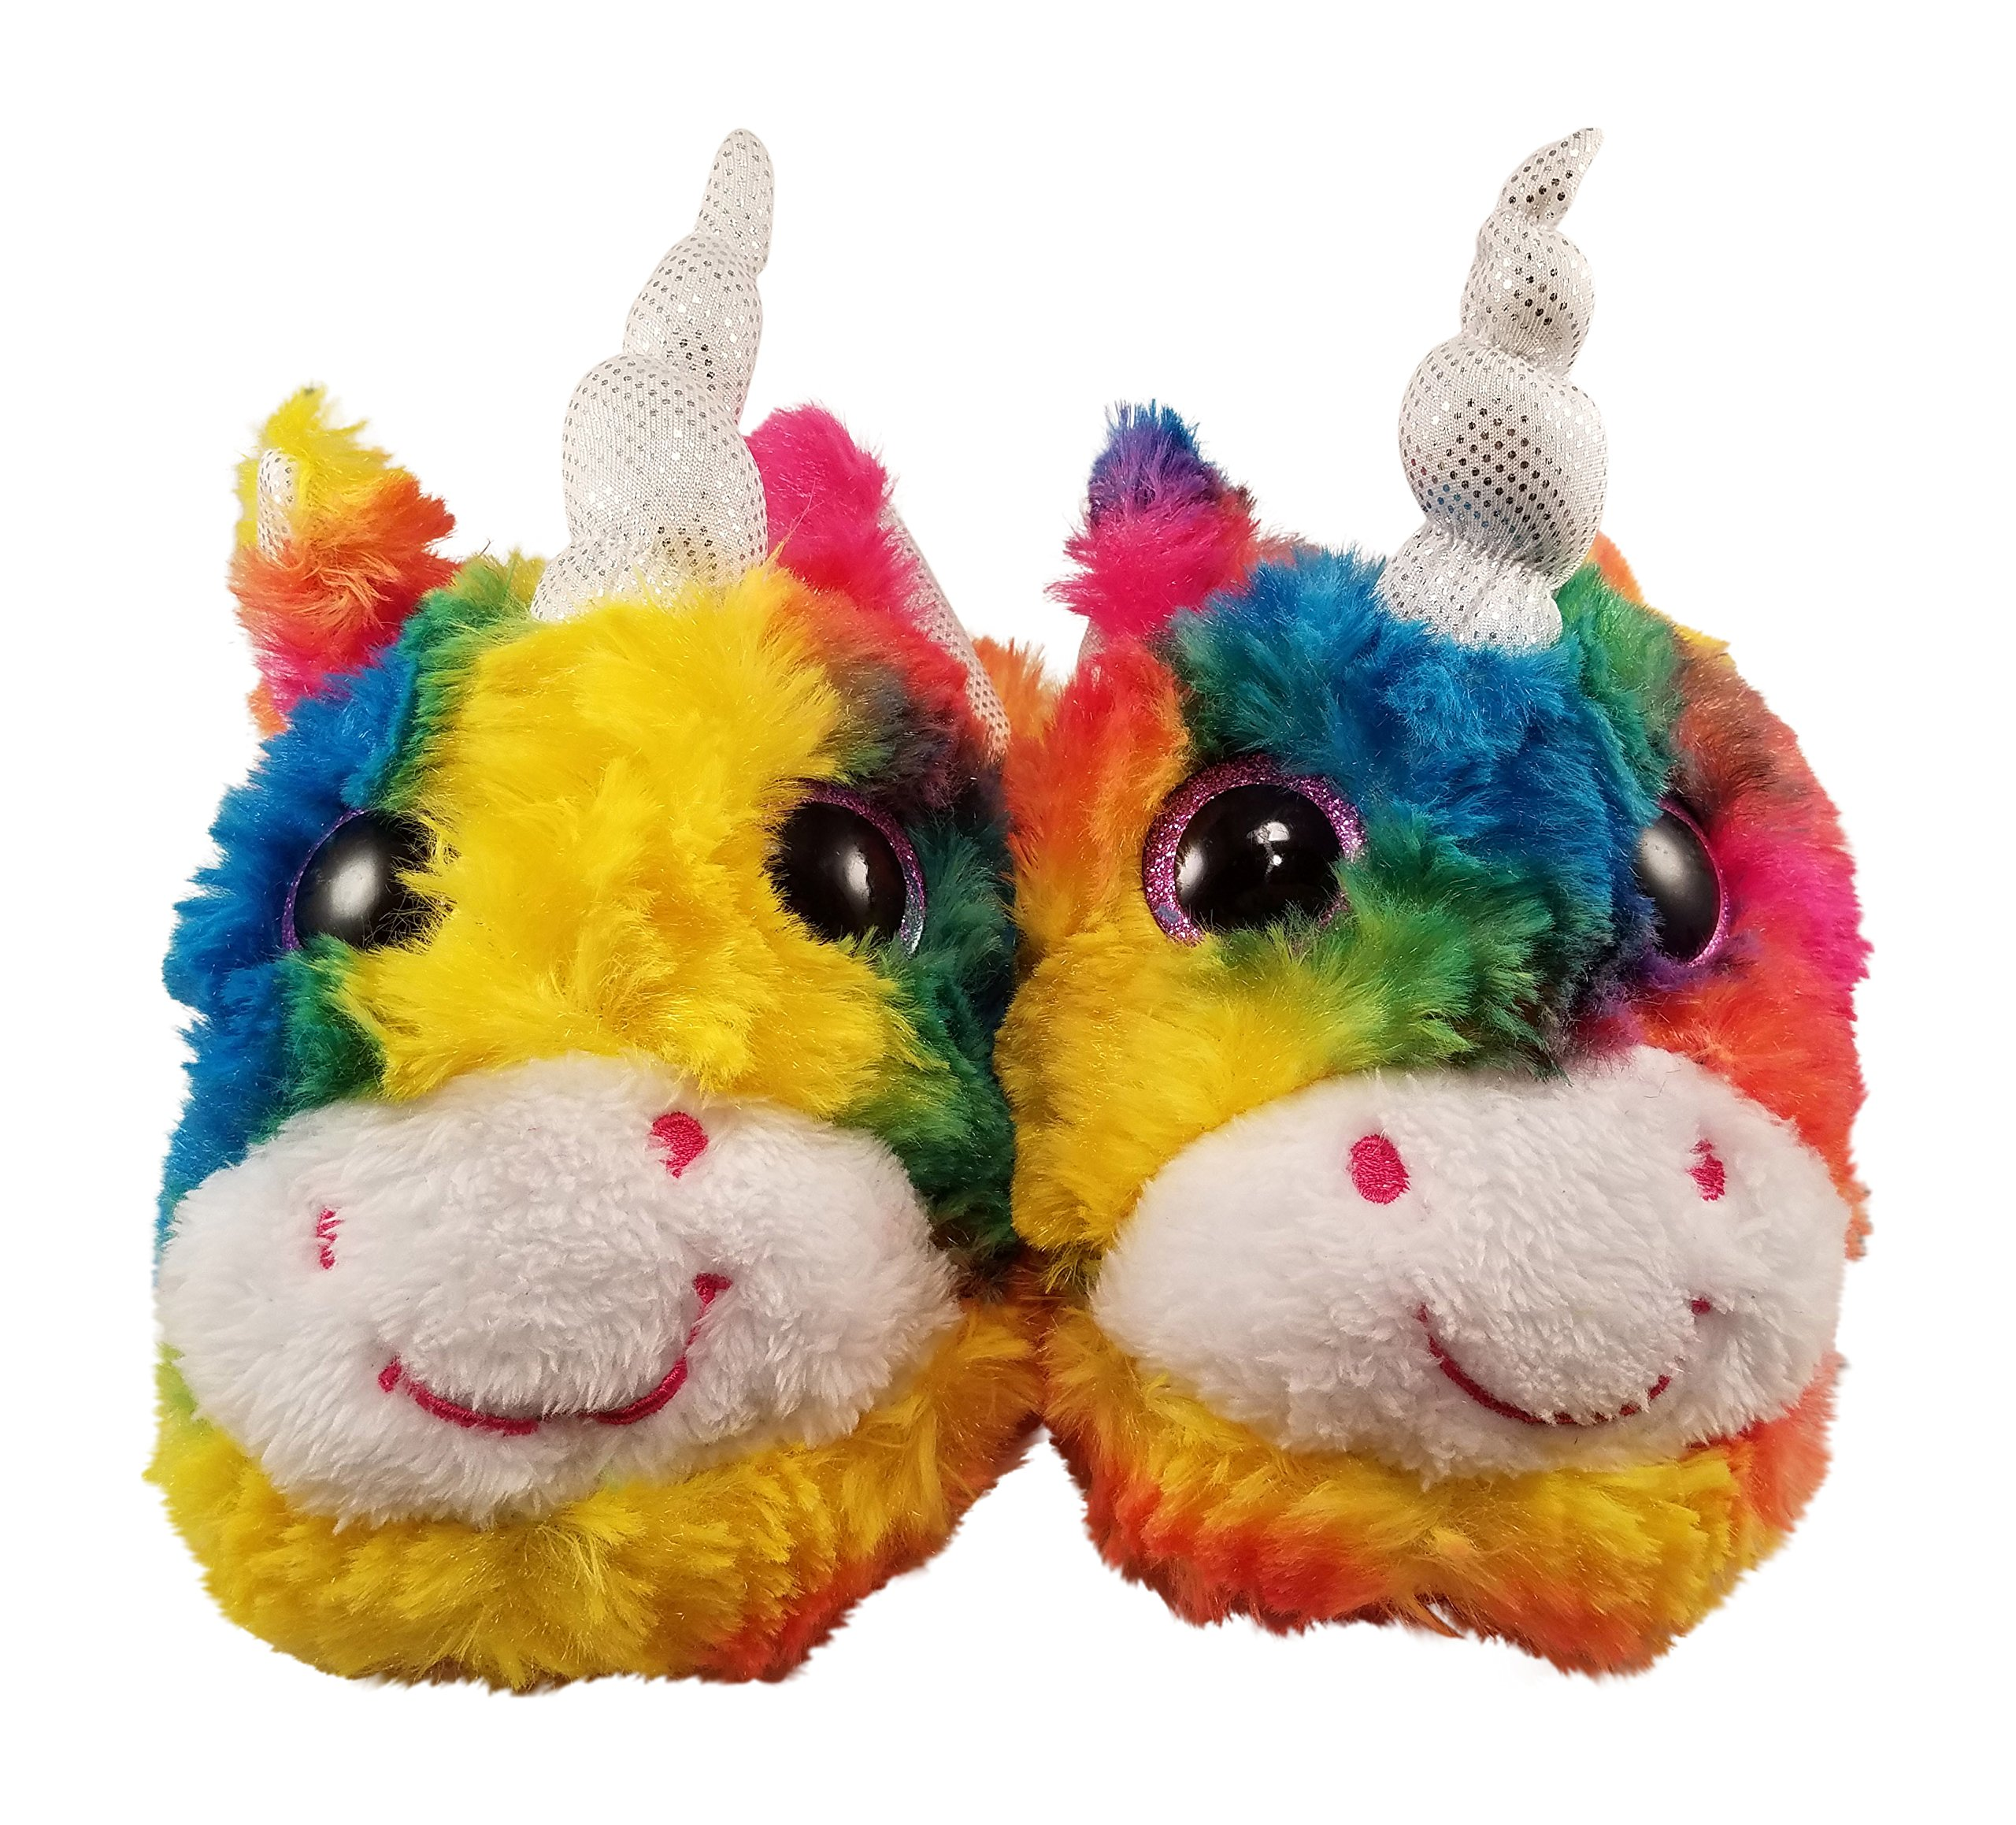 3a747771f32c Get Quotations · Unicorn Slippers for Girls with Rainbow Colors and Big Eyes